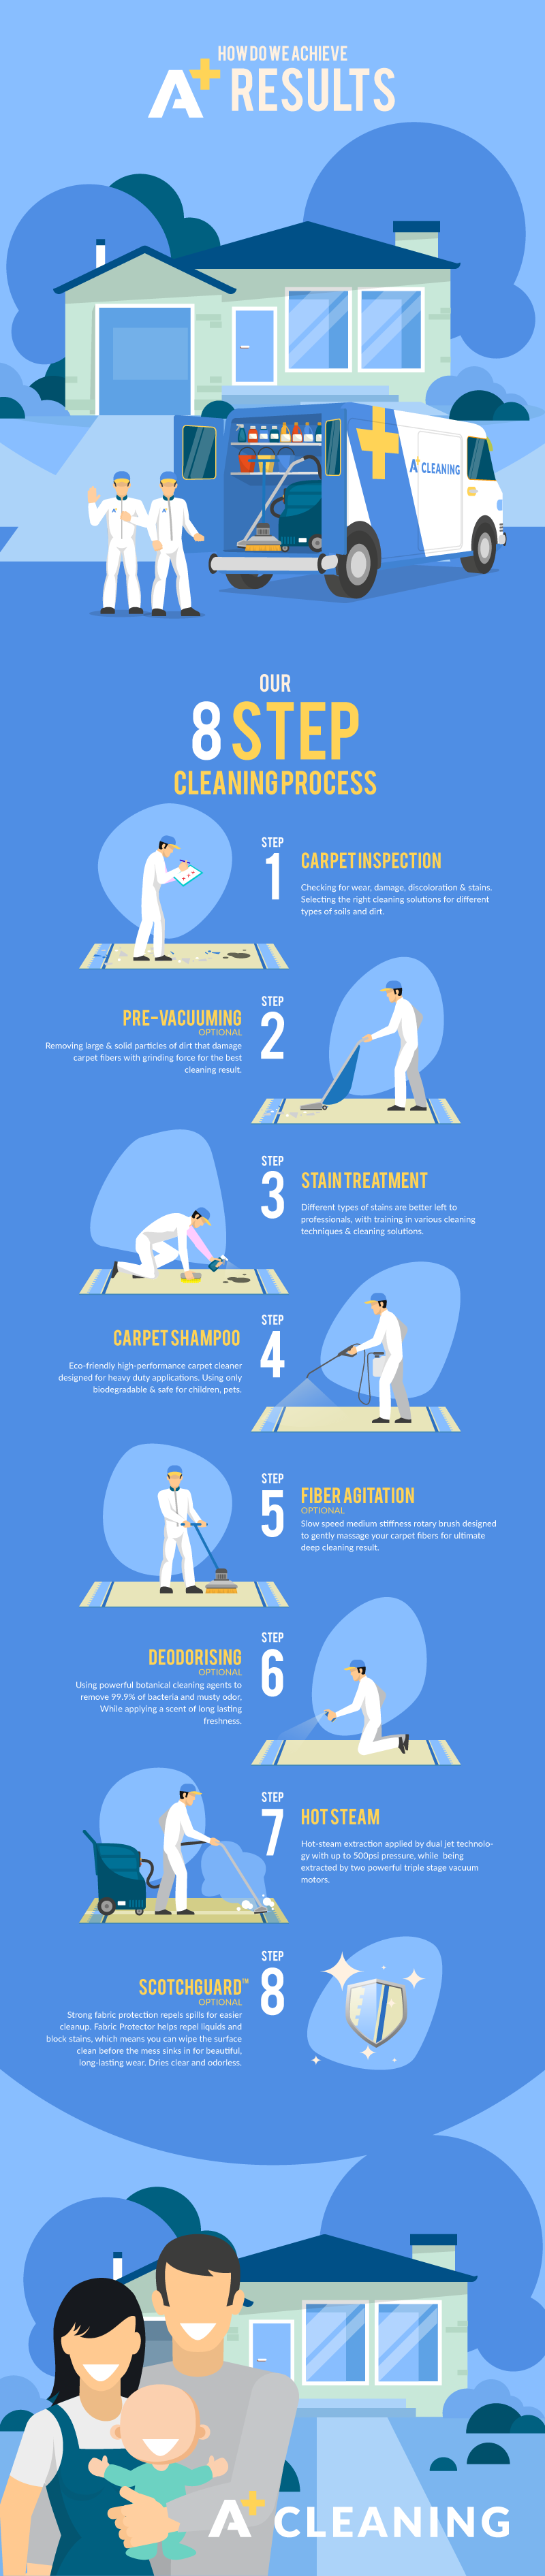 Carpet cleaning infographic that describes service and its process.